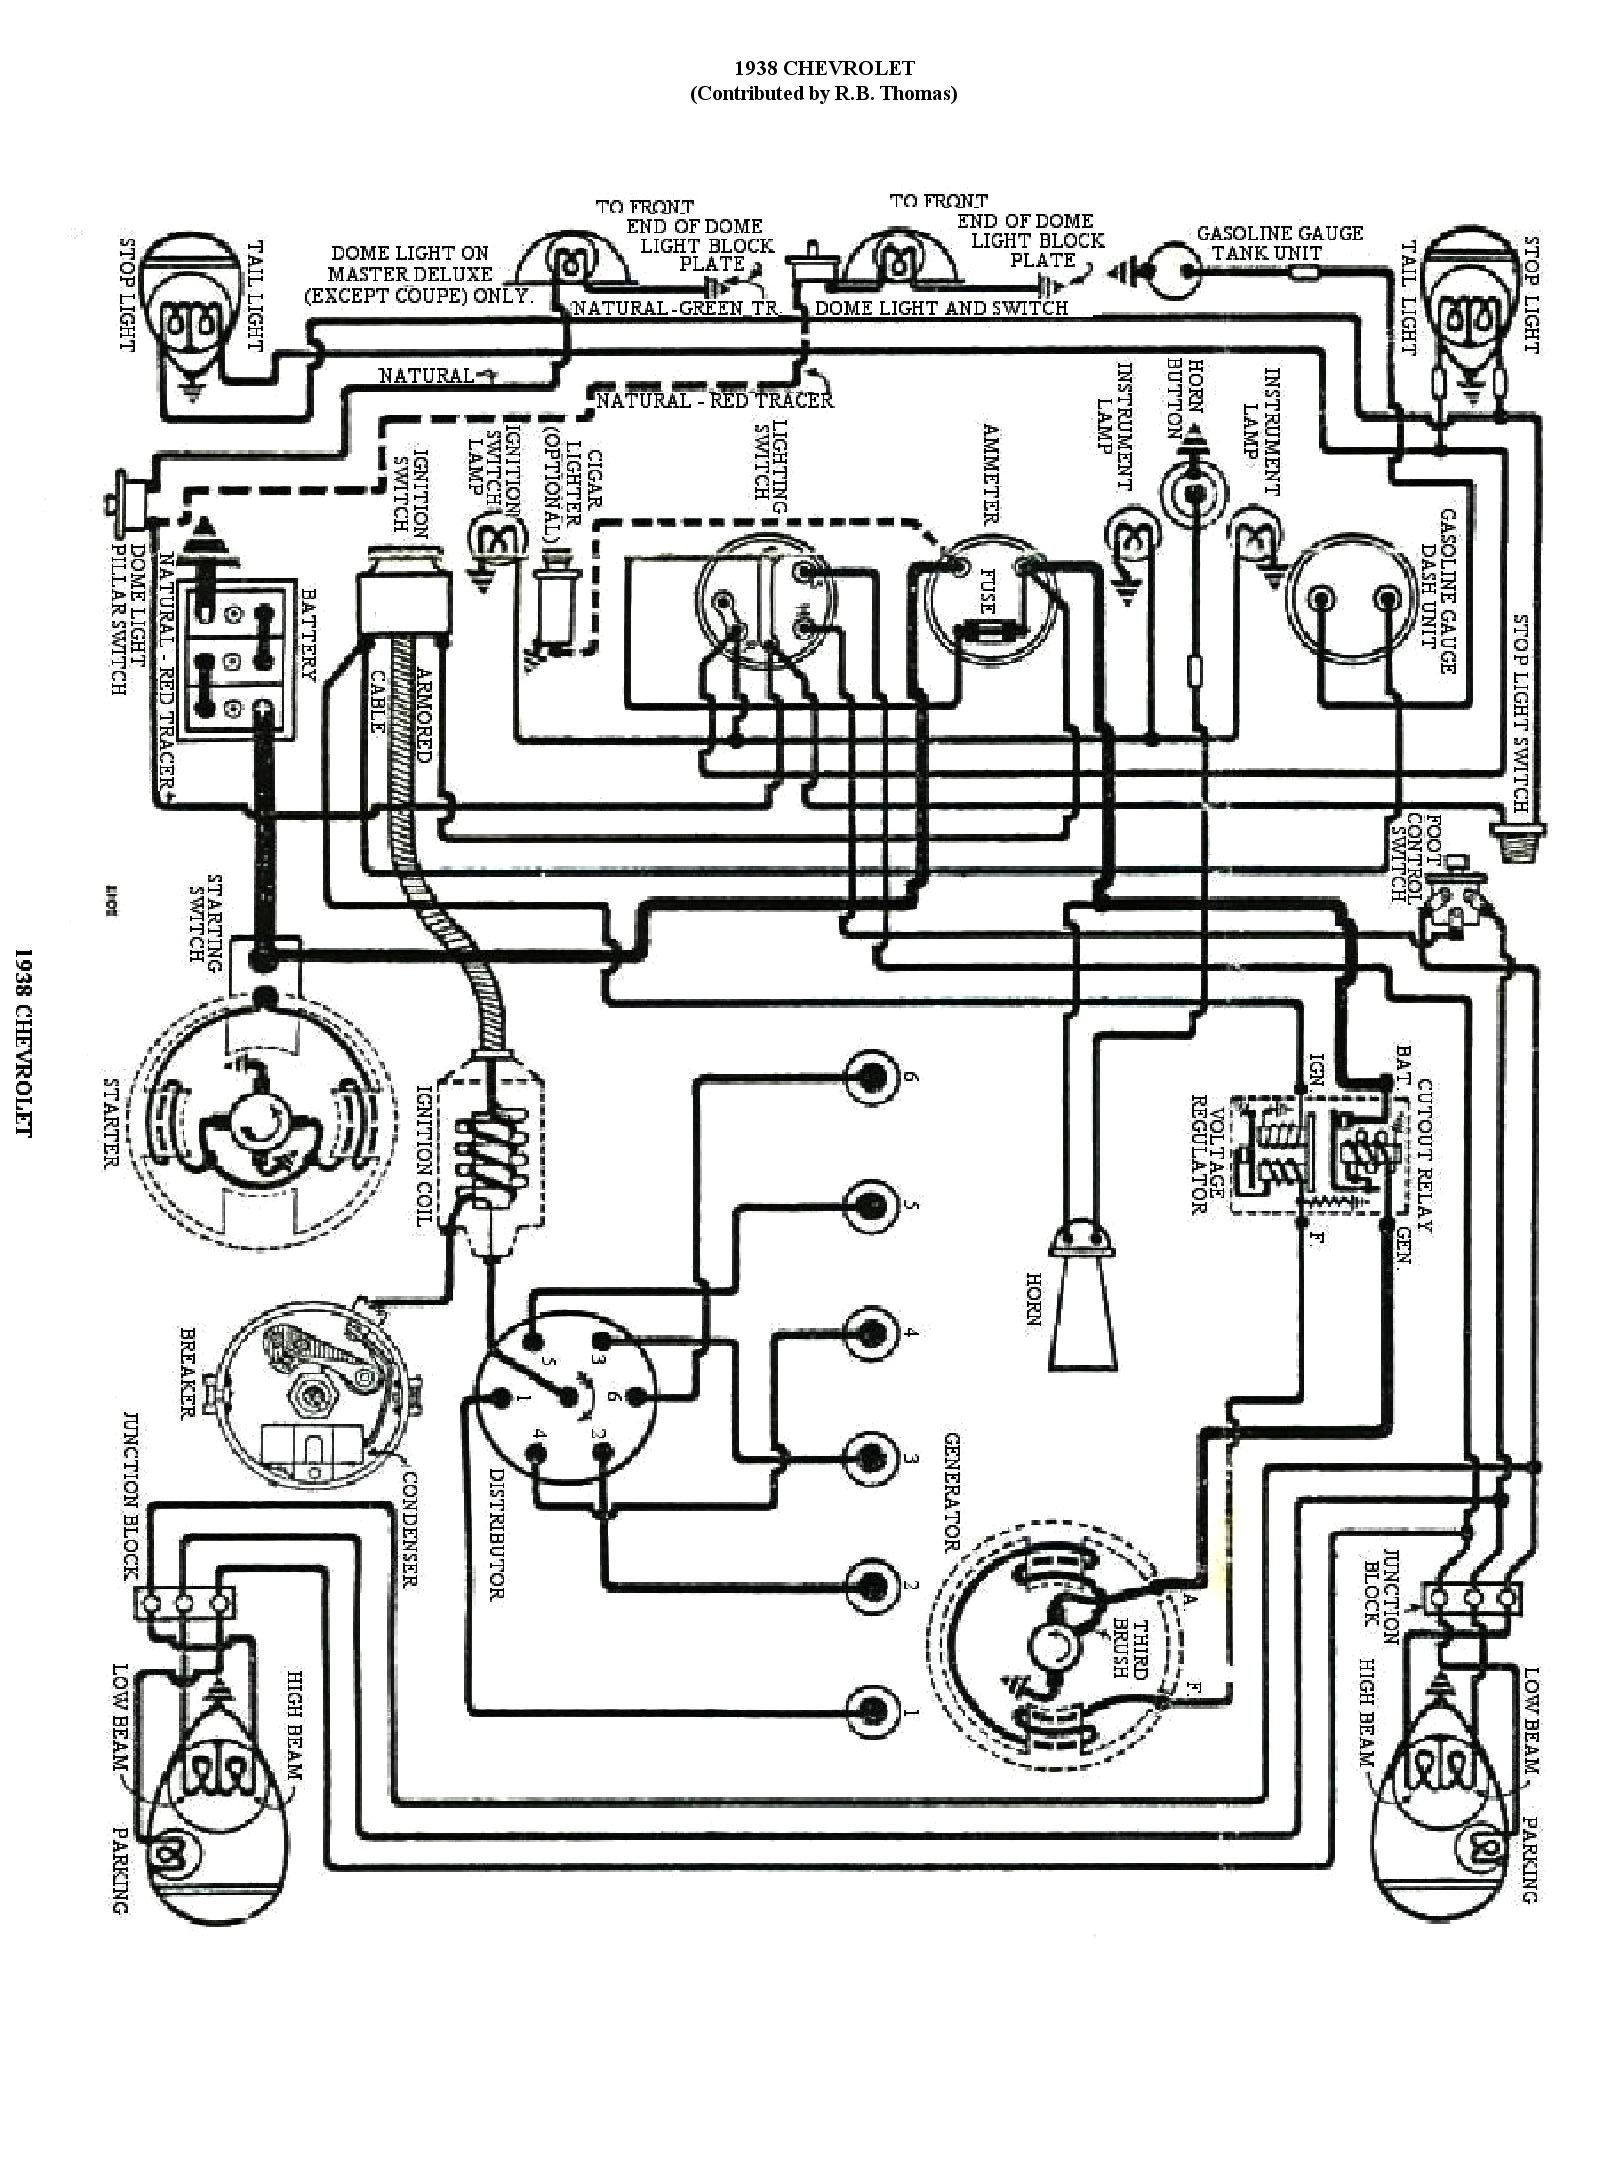 1954 buick wiring diagram wiring library 1954 buick wiring diagrams hometown buick